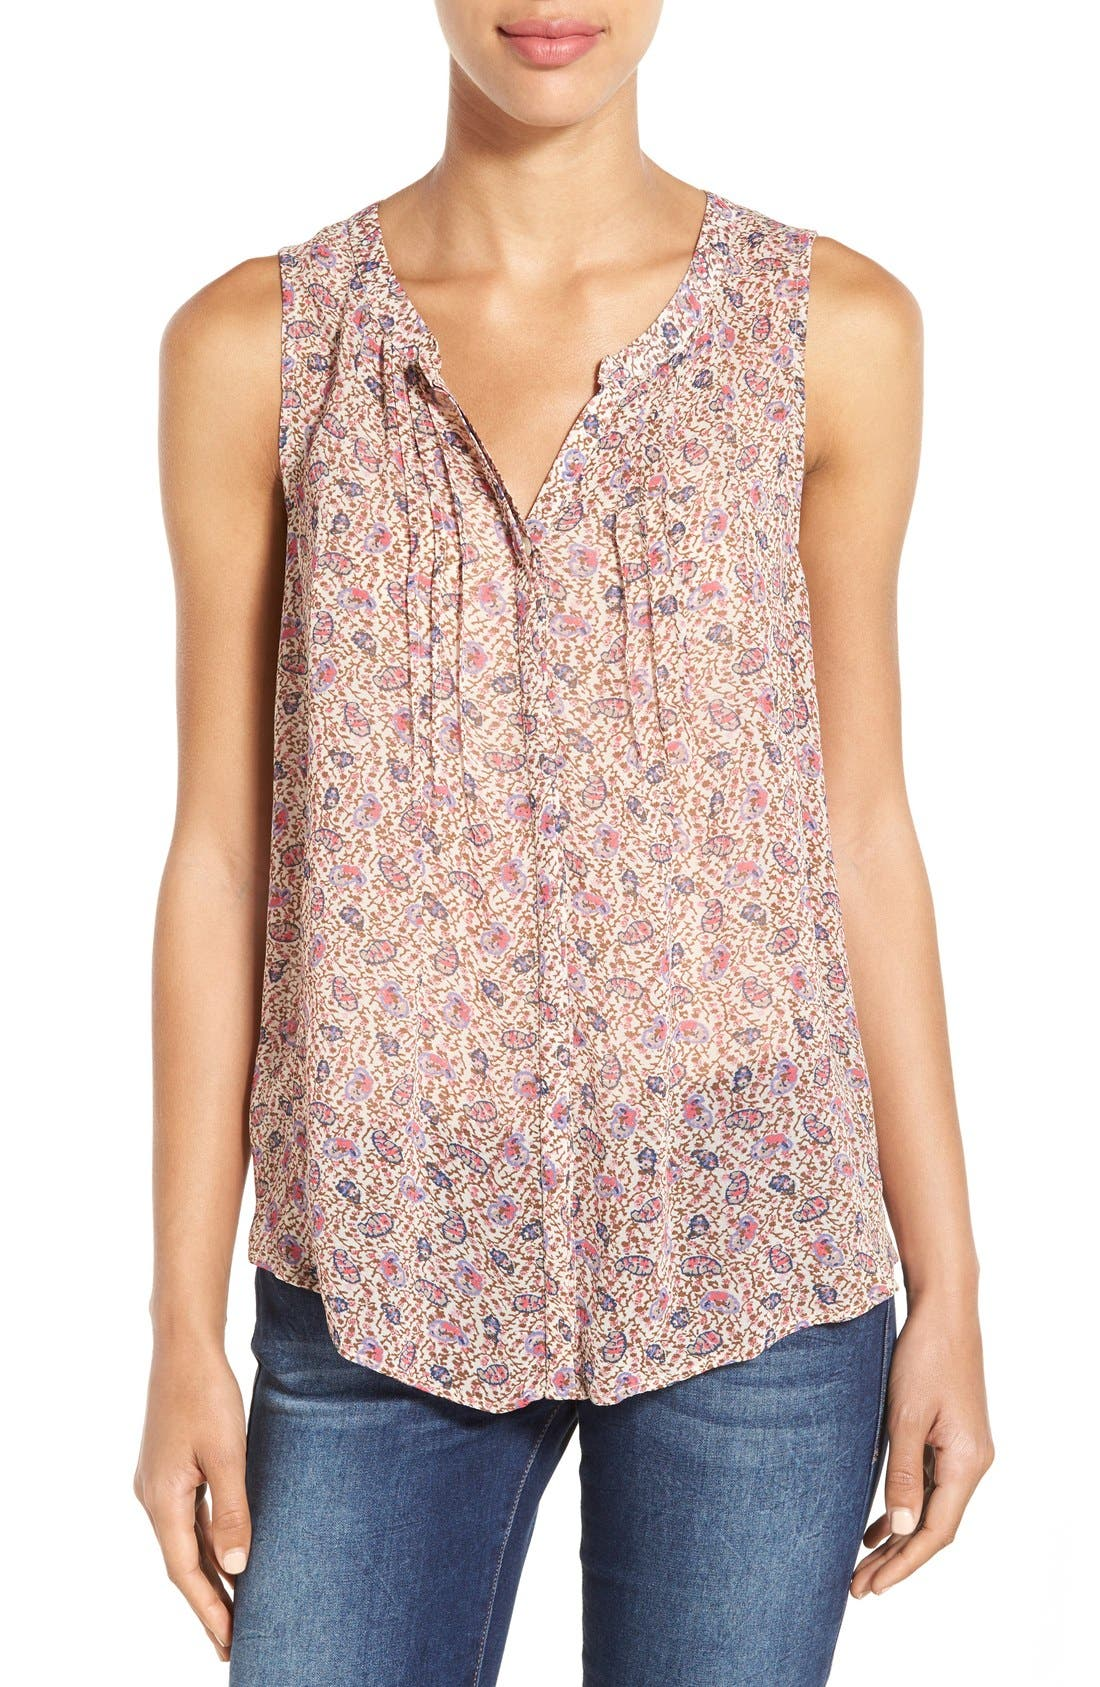 Alternate Image 1 Selected - Lucky Brand Ditsy Paisley Sleeveless Blouse